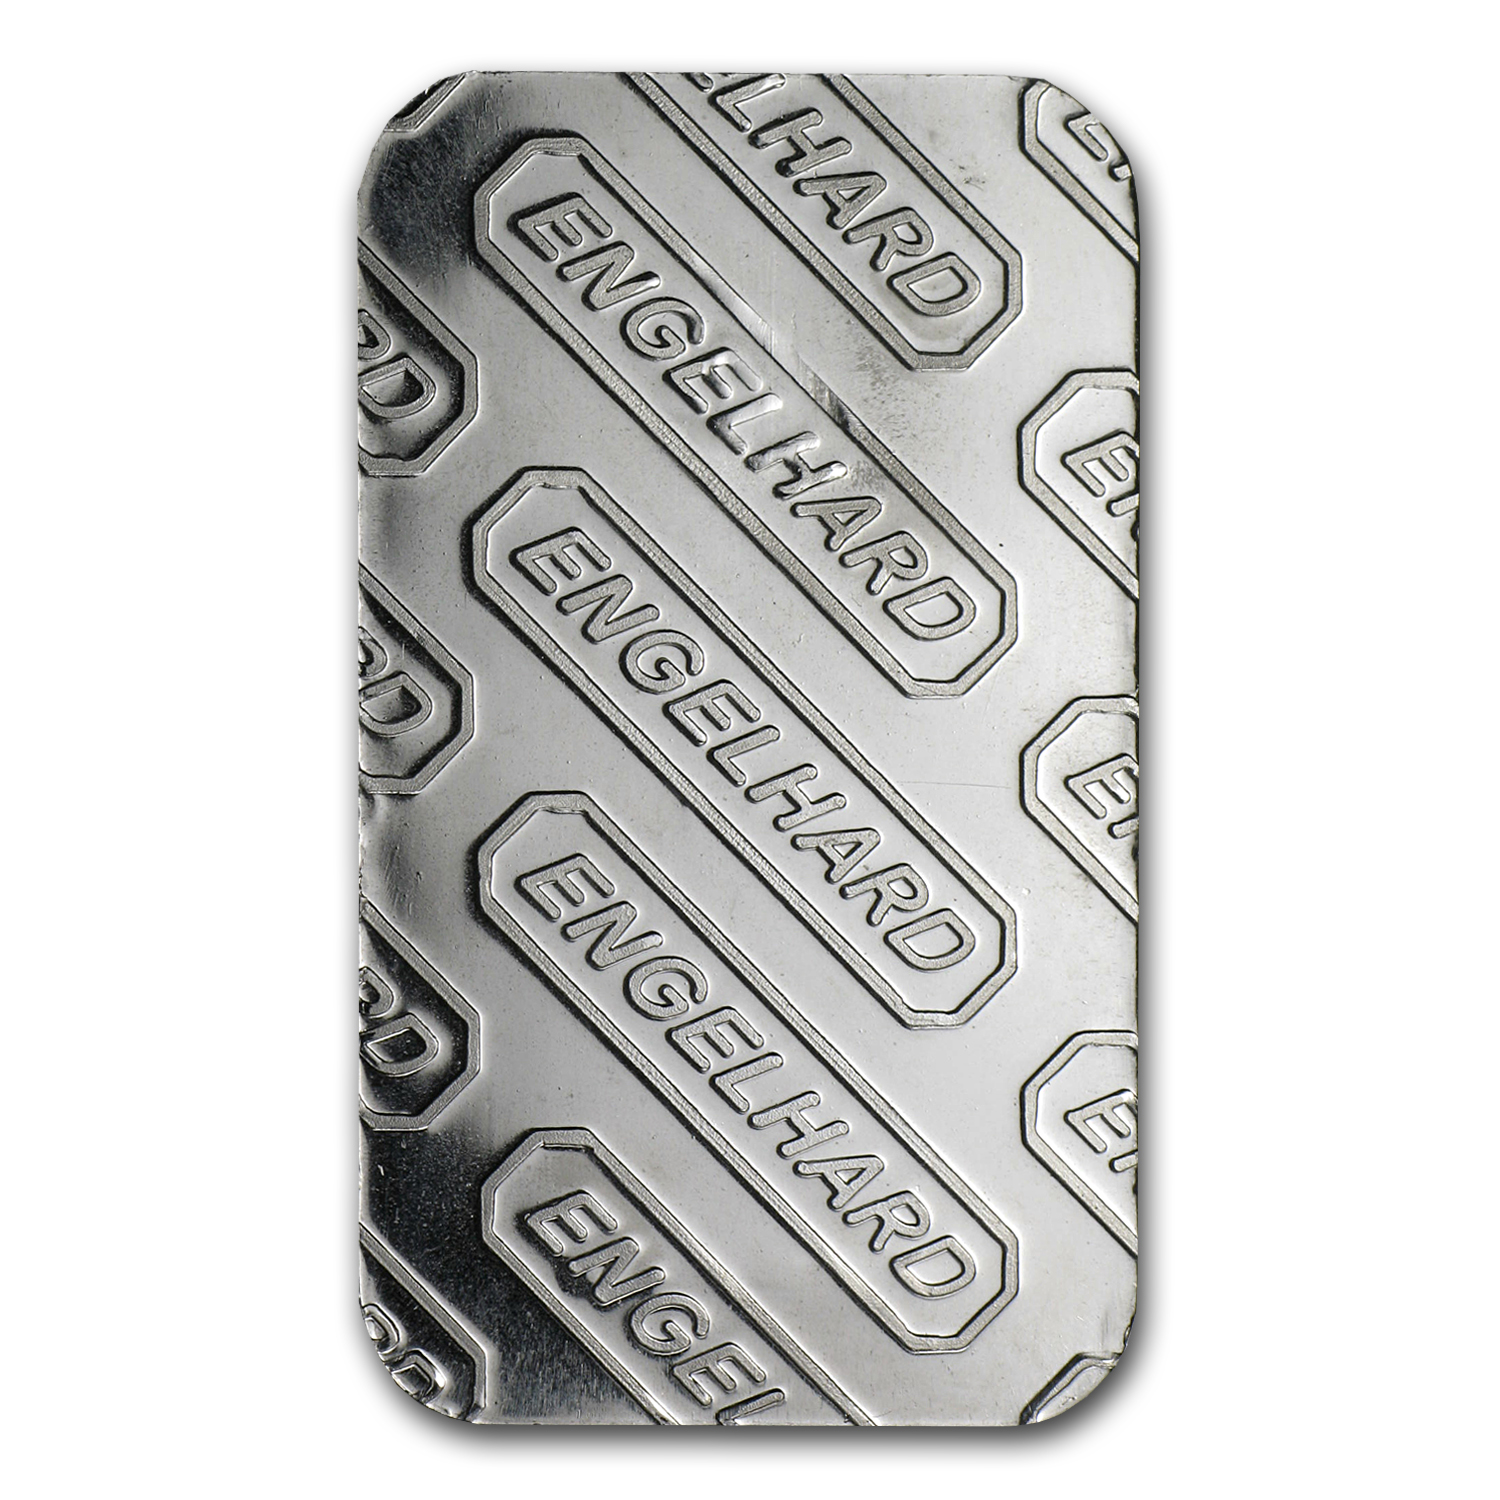 1 oz Platinum Bar - Engelhard (.9995 Fine, No Assay)